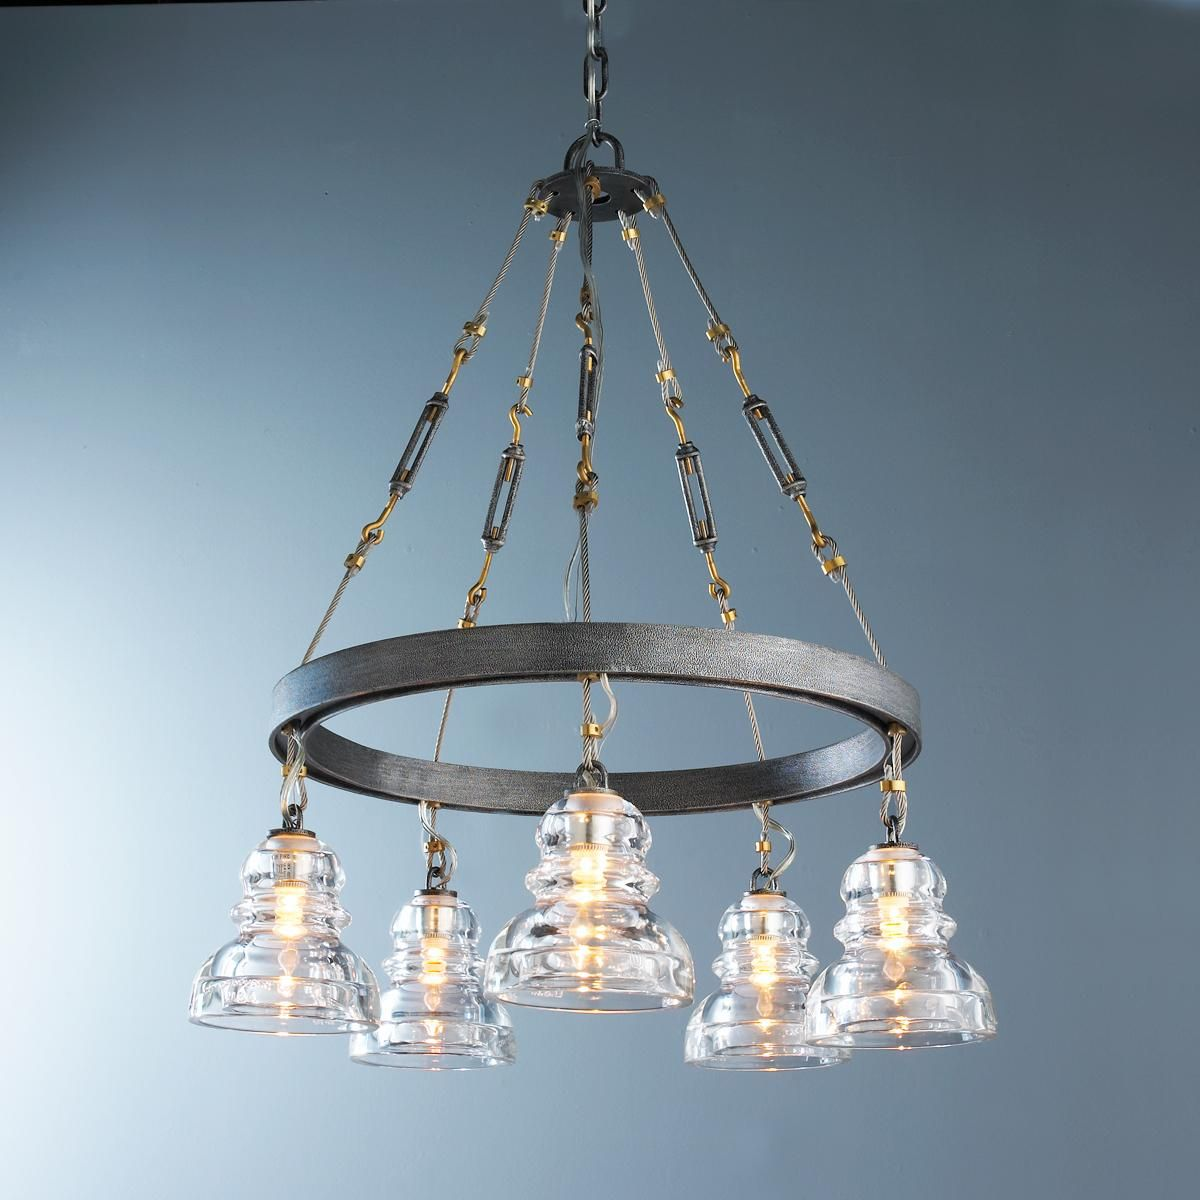 Reproduction Insulator Glass Chandelier from the lighting source ...